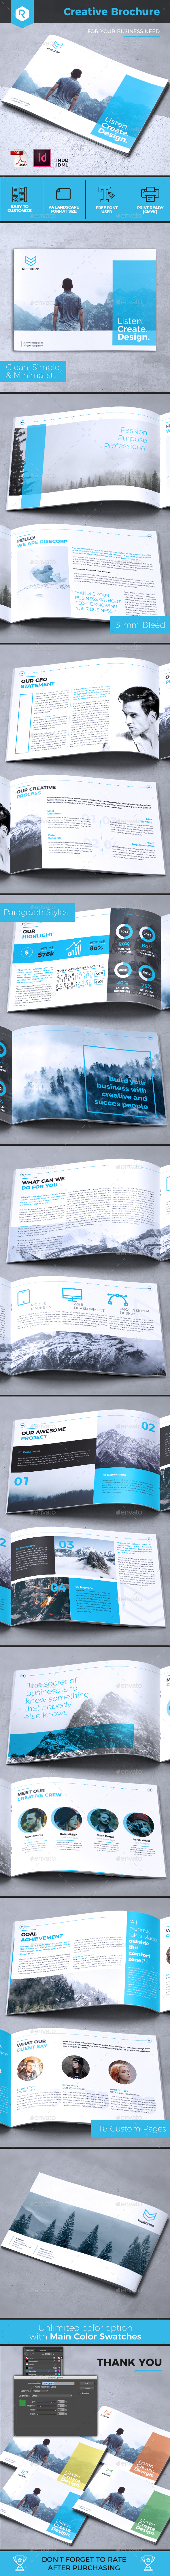 Creative Brochure Vol. 25 - A4 Landscape - Corporate Brochures